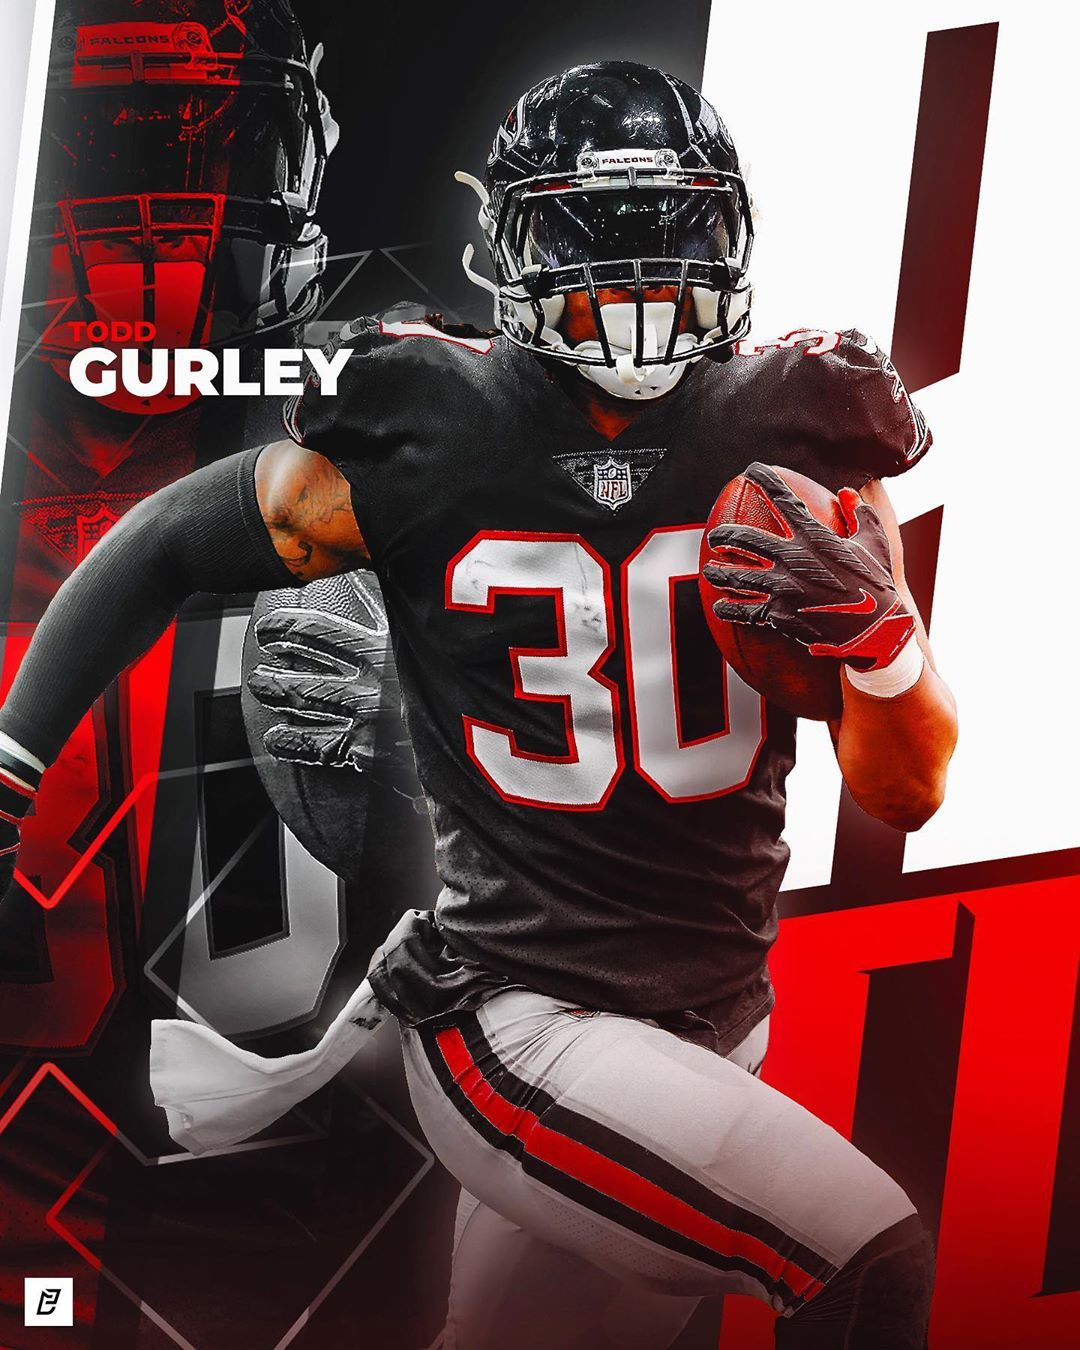 Enrique Castellano On Instagram Todd Gurley X Atlanta Falcons Would This Be Something You Guys Would In 2020 Atlanta Falcons Football Todd Gurley Nfl Football Art